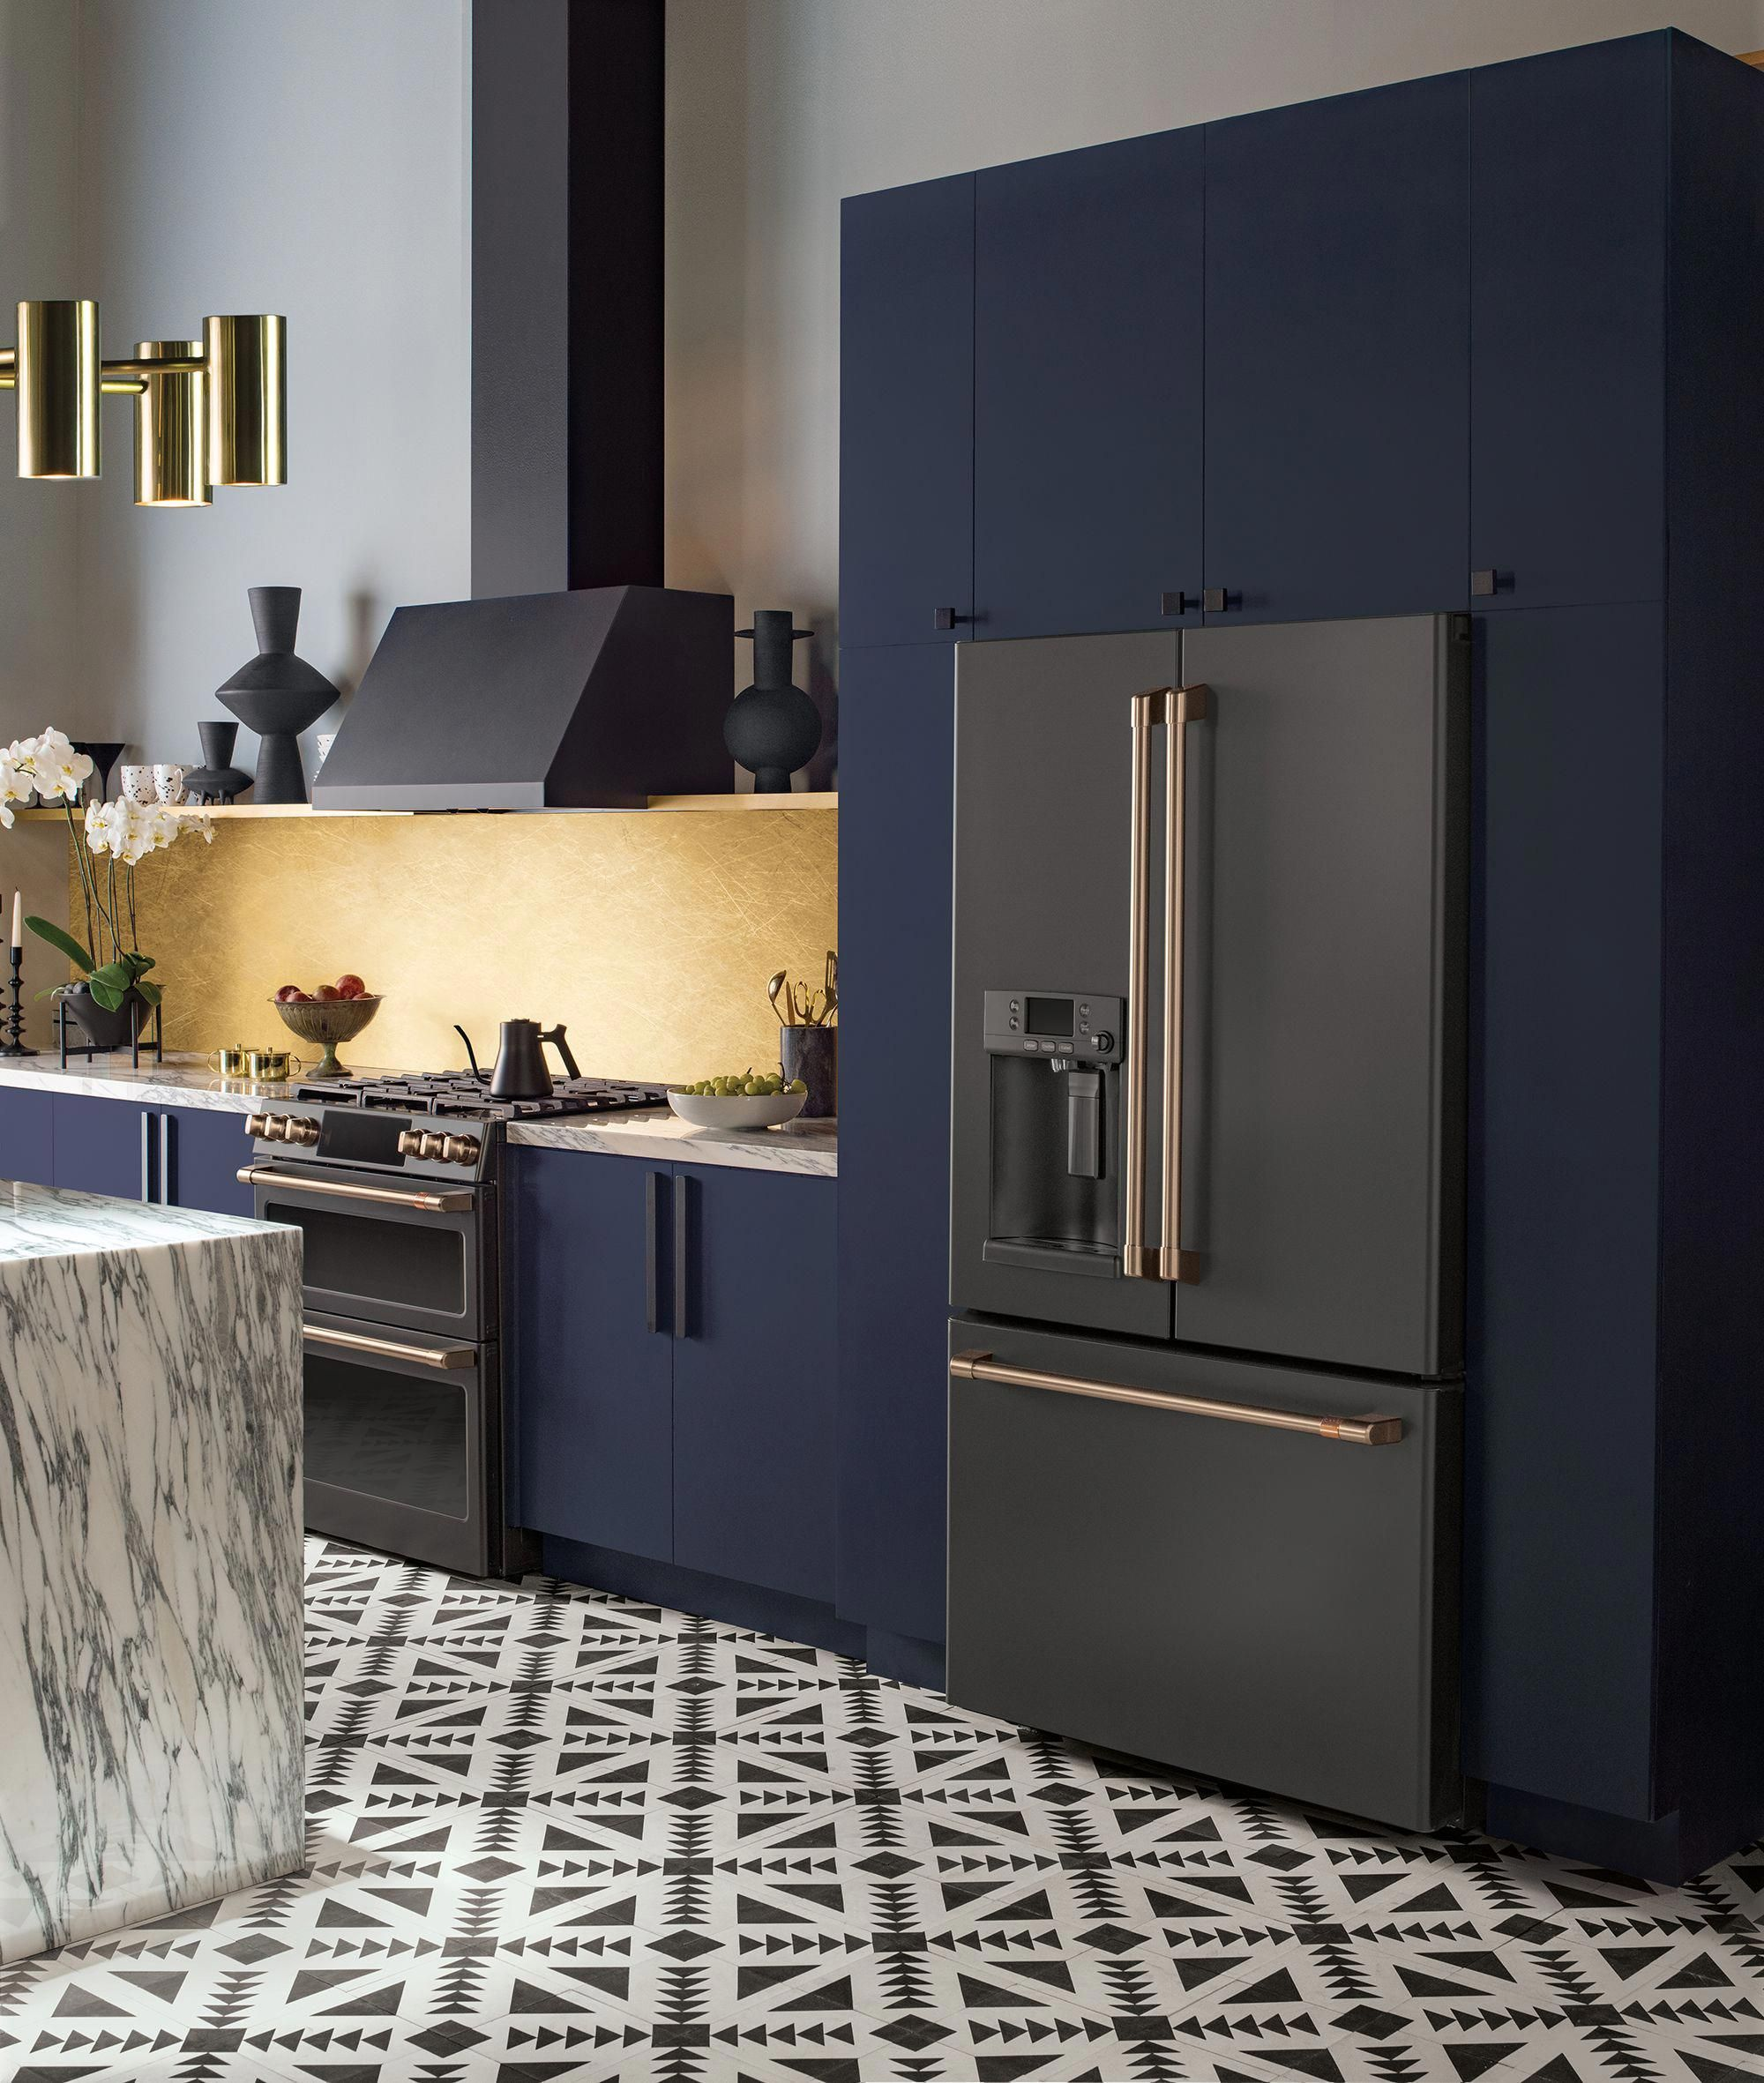 Luxury modern kitchen with midnight blue cabinets and beautiful @cafeappliances Matte Collection black appliances with Brushed Bronze finishes. #kitchen #modern #blue #black #appliances #luxury #kitchendesign